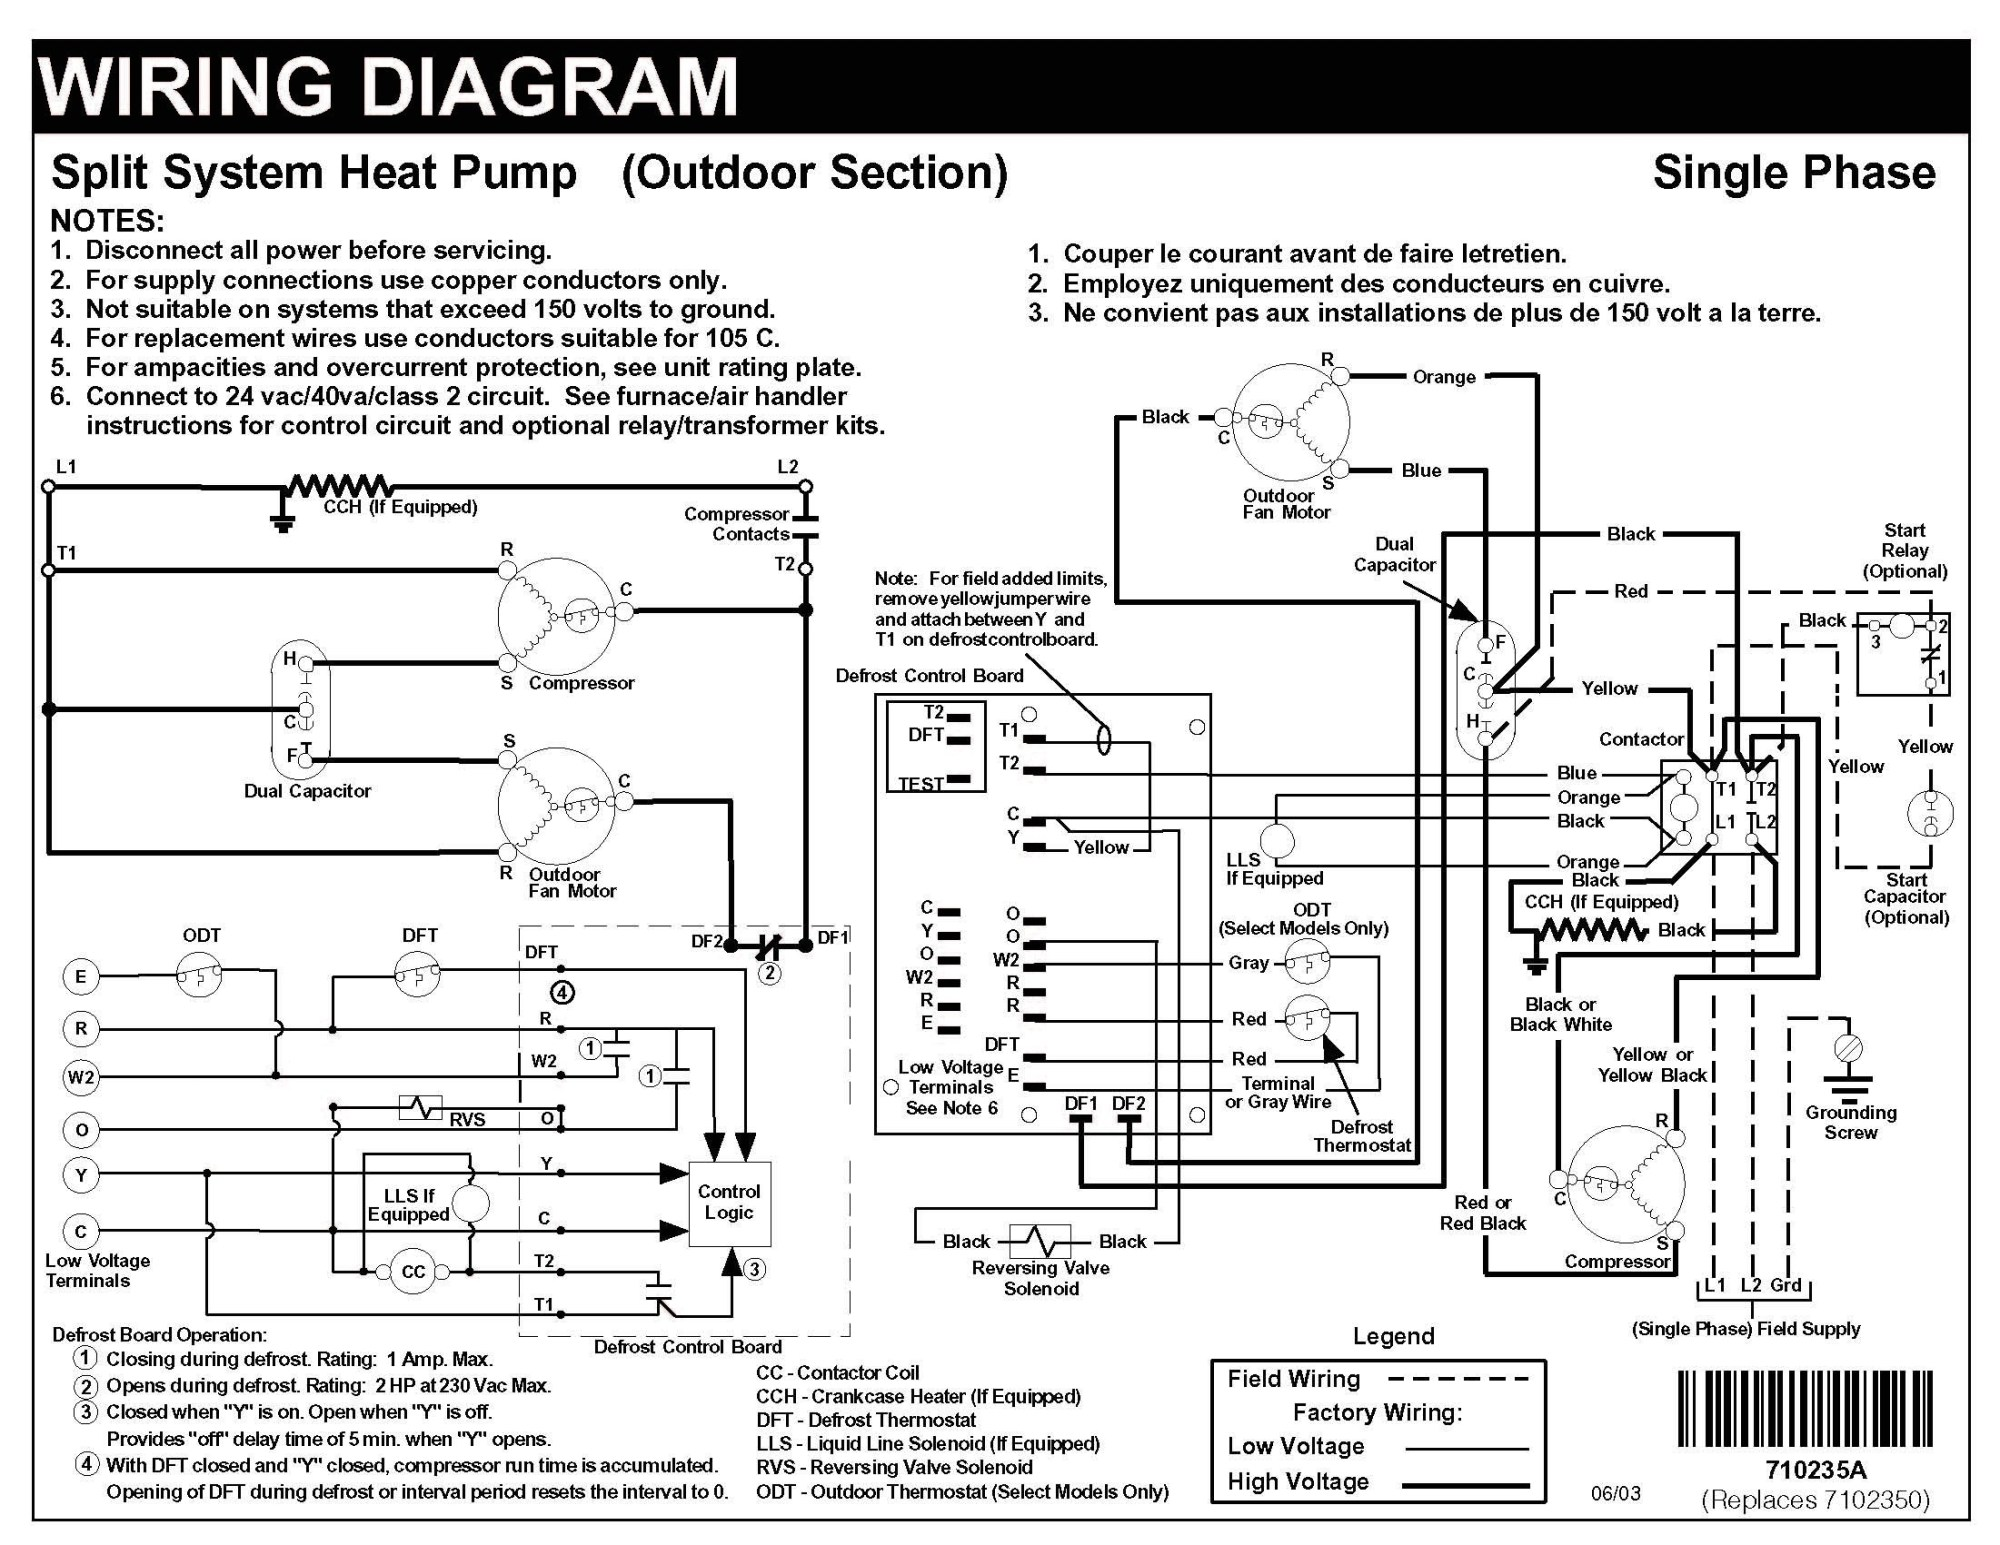 hight resolution of luxaire heat pump wiring diagram wiring diagram toolbox spurce old carrier wiring diagrams heat pump water